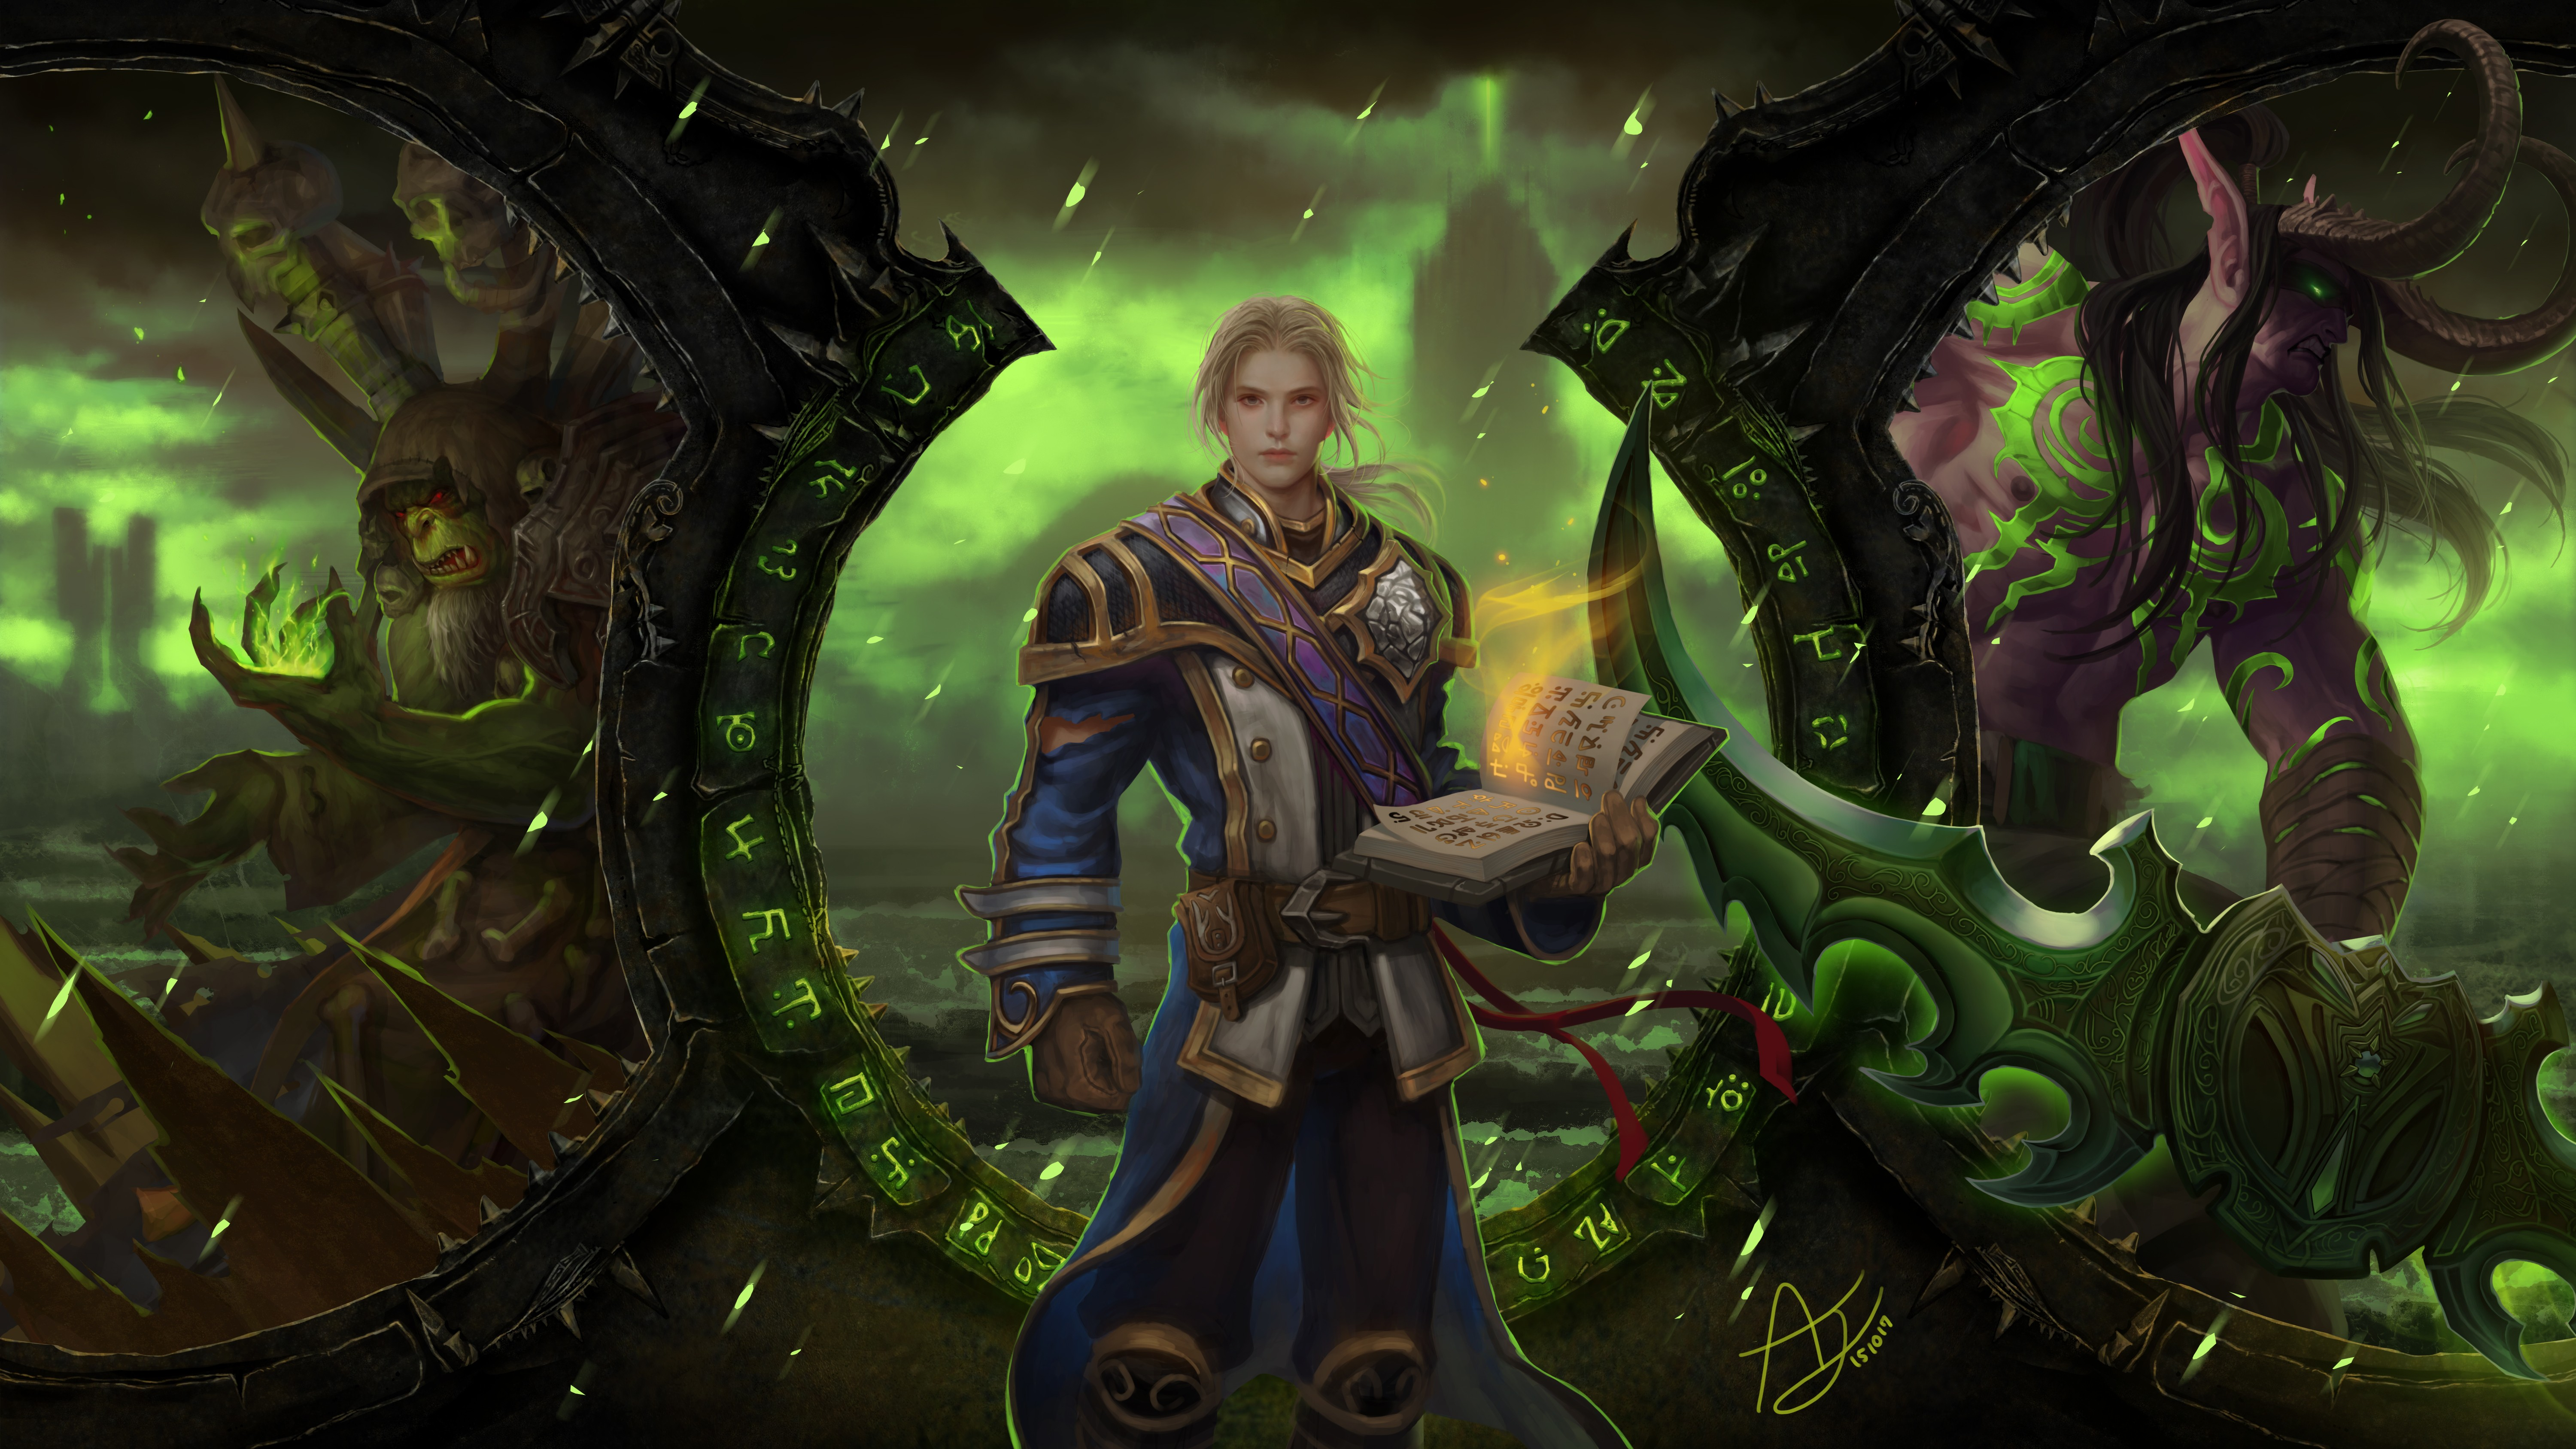 wallpaper world of warcraft legion mmorpg best game fantasy pc art 8222